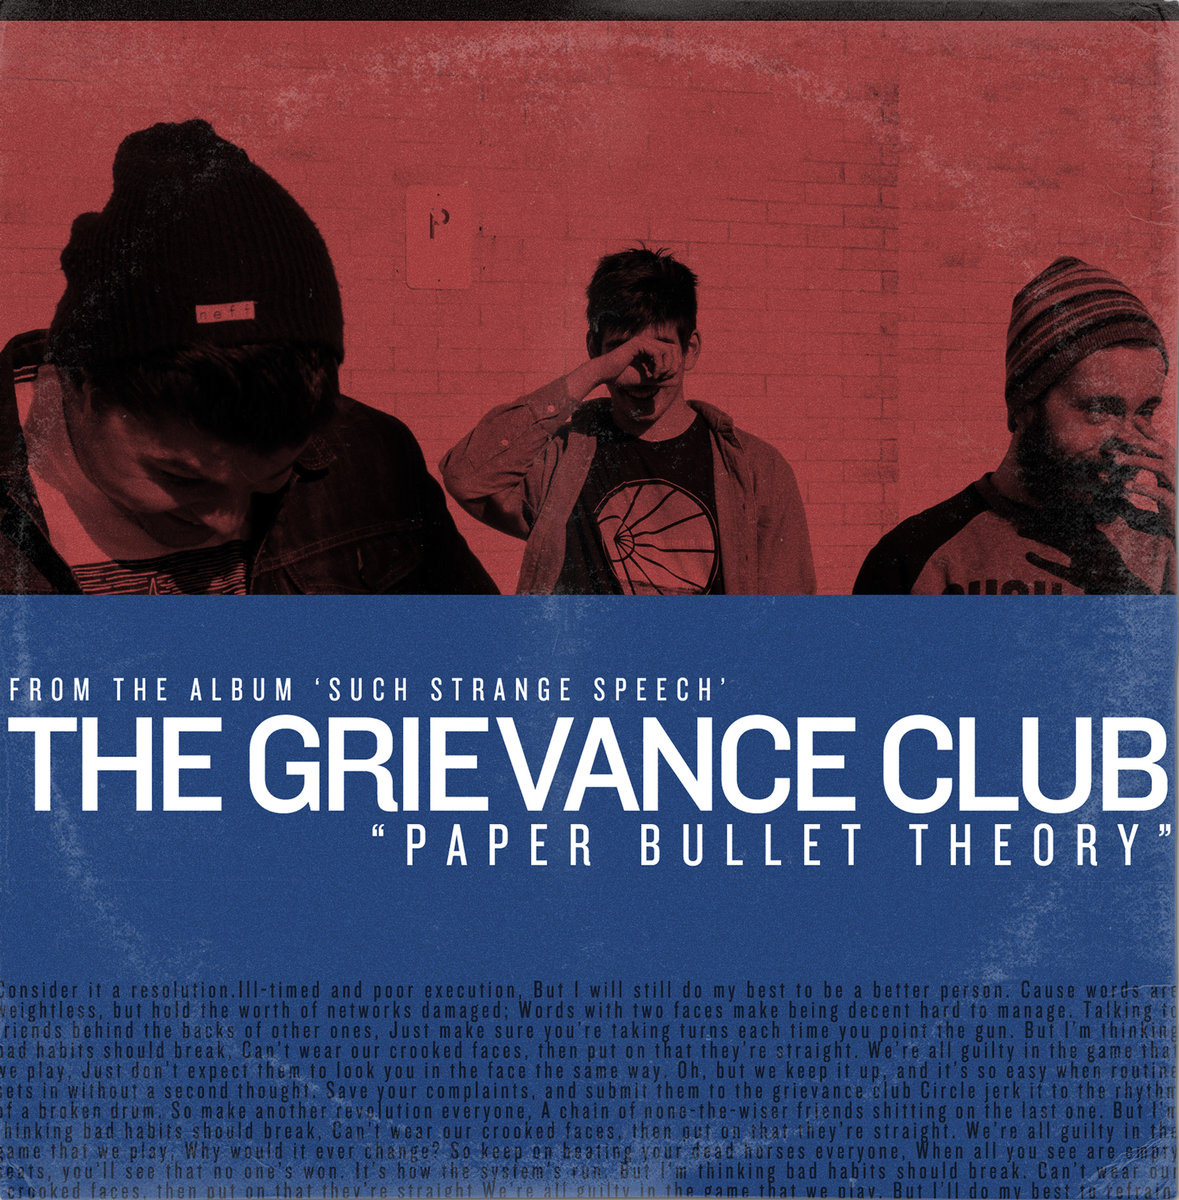 The Grievance Club - Paper Bullet Theory Digital Single Photography & Design